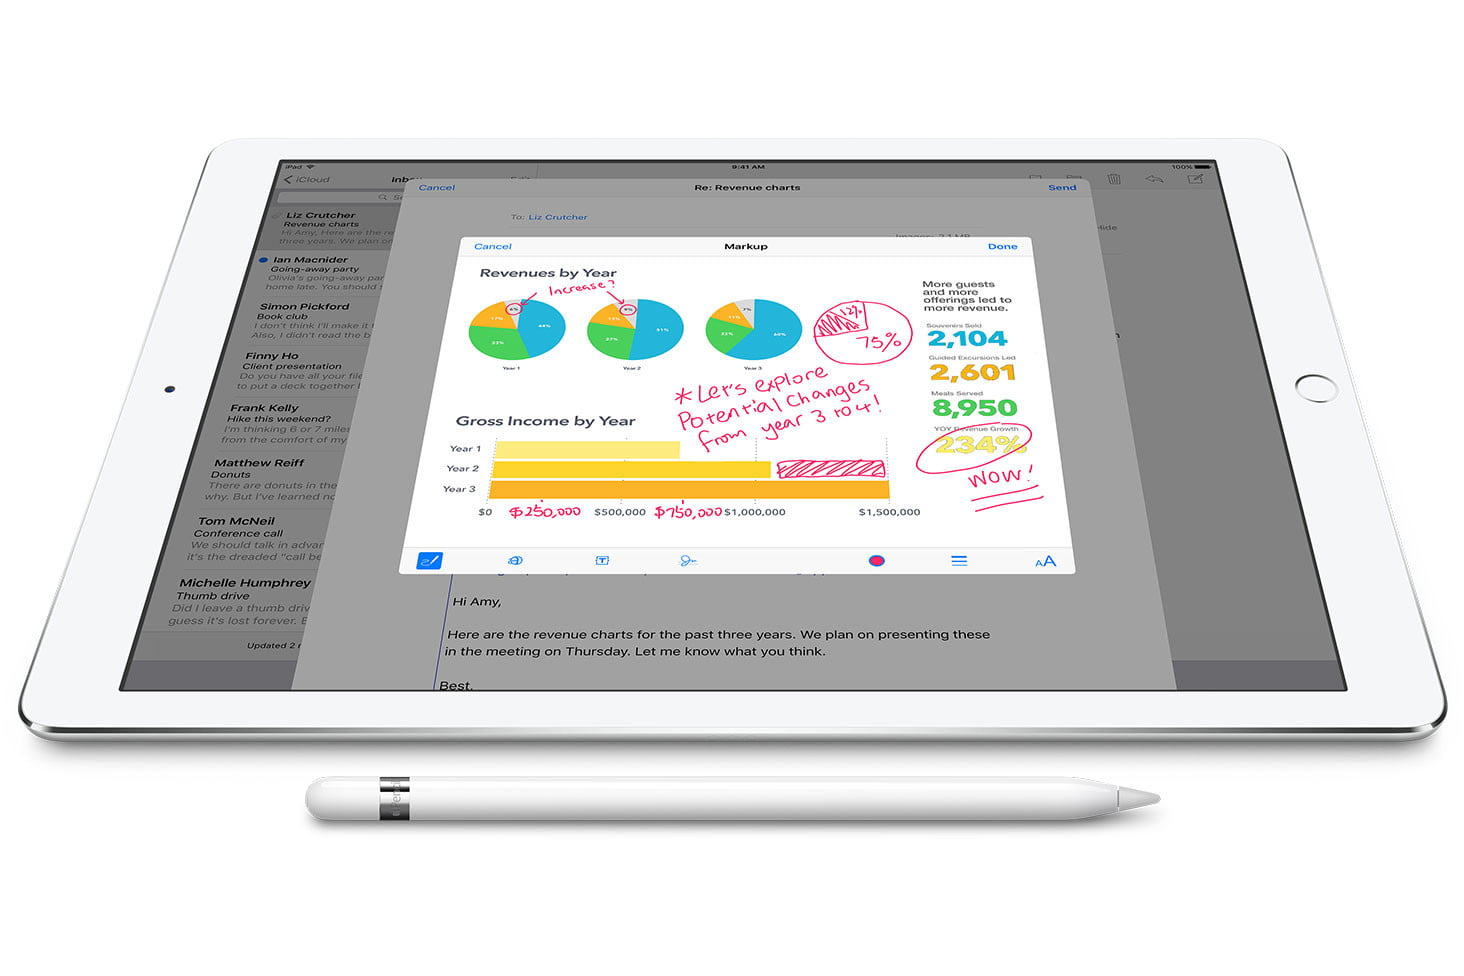 apple ipad pro pencil for artists oped 9